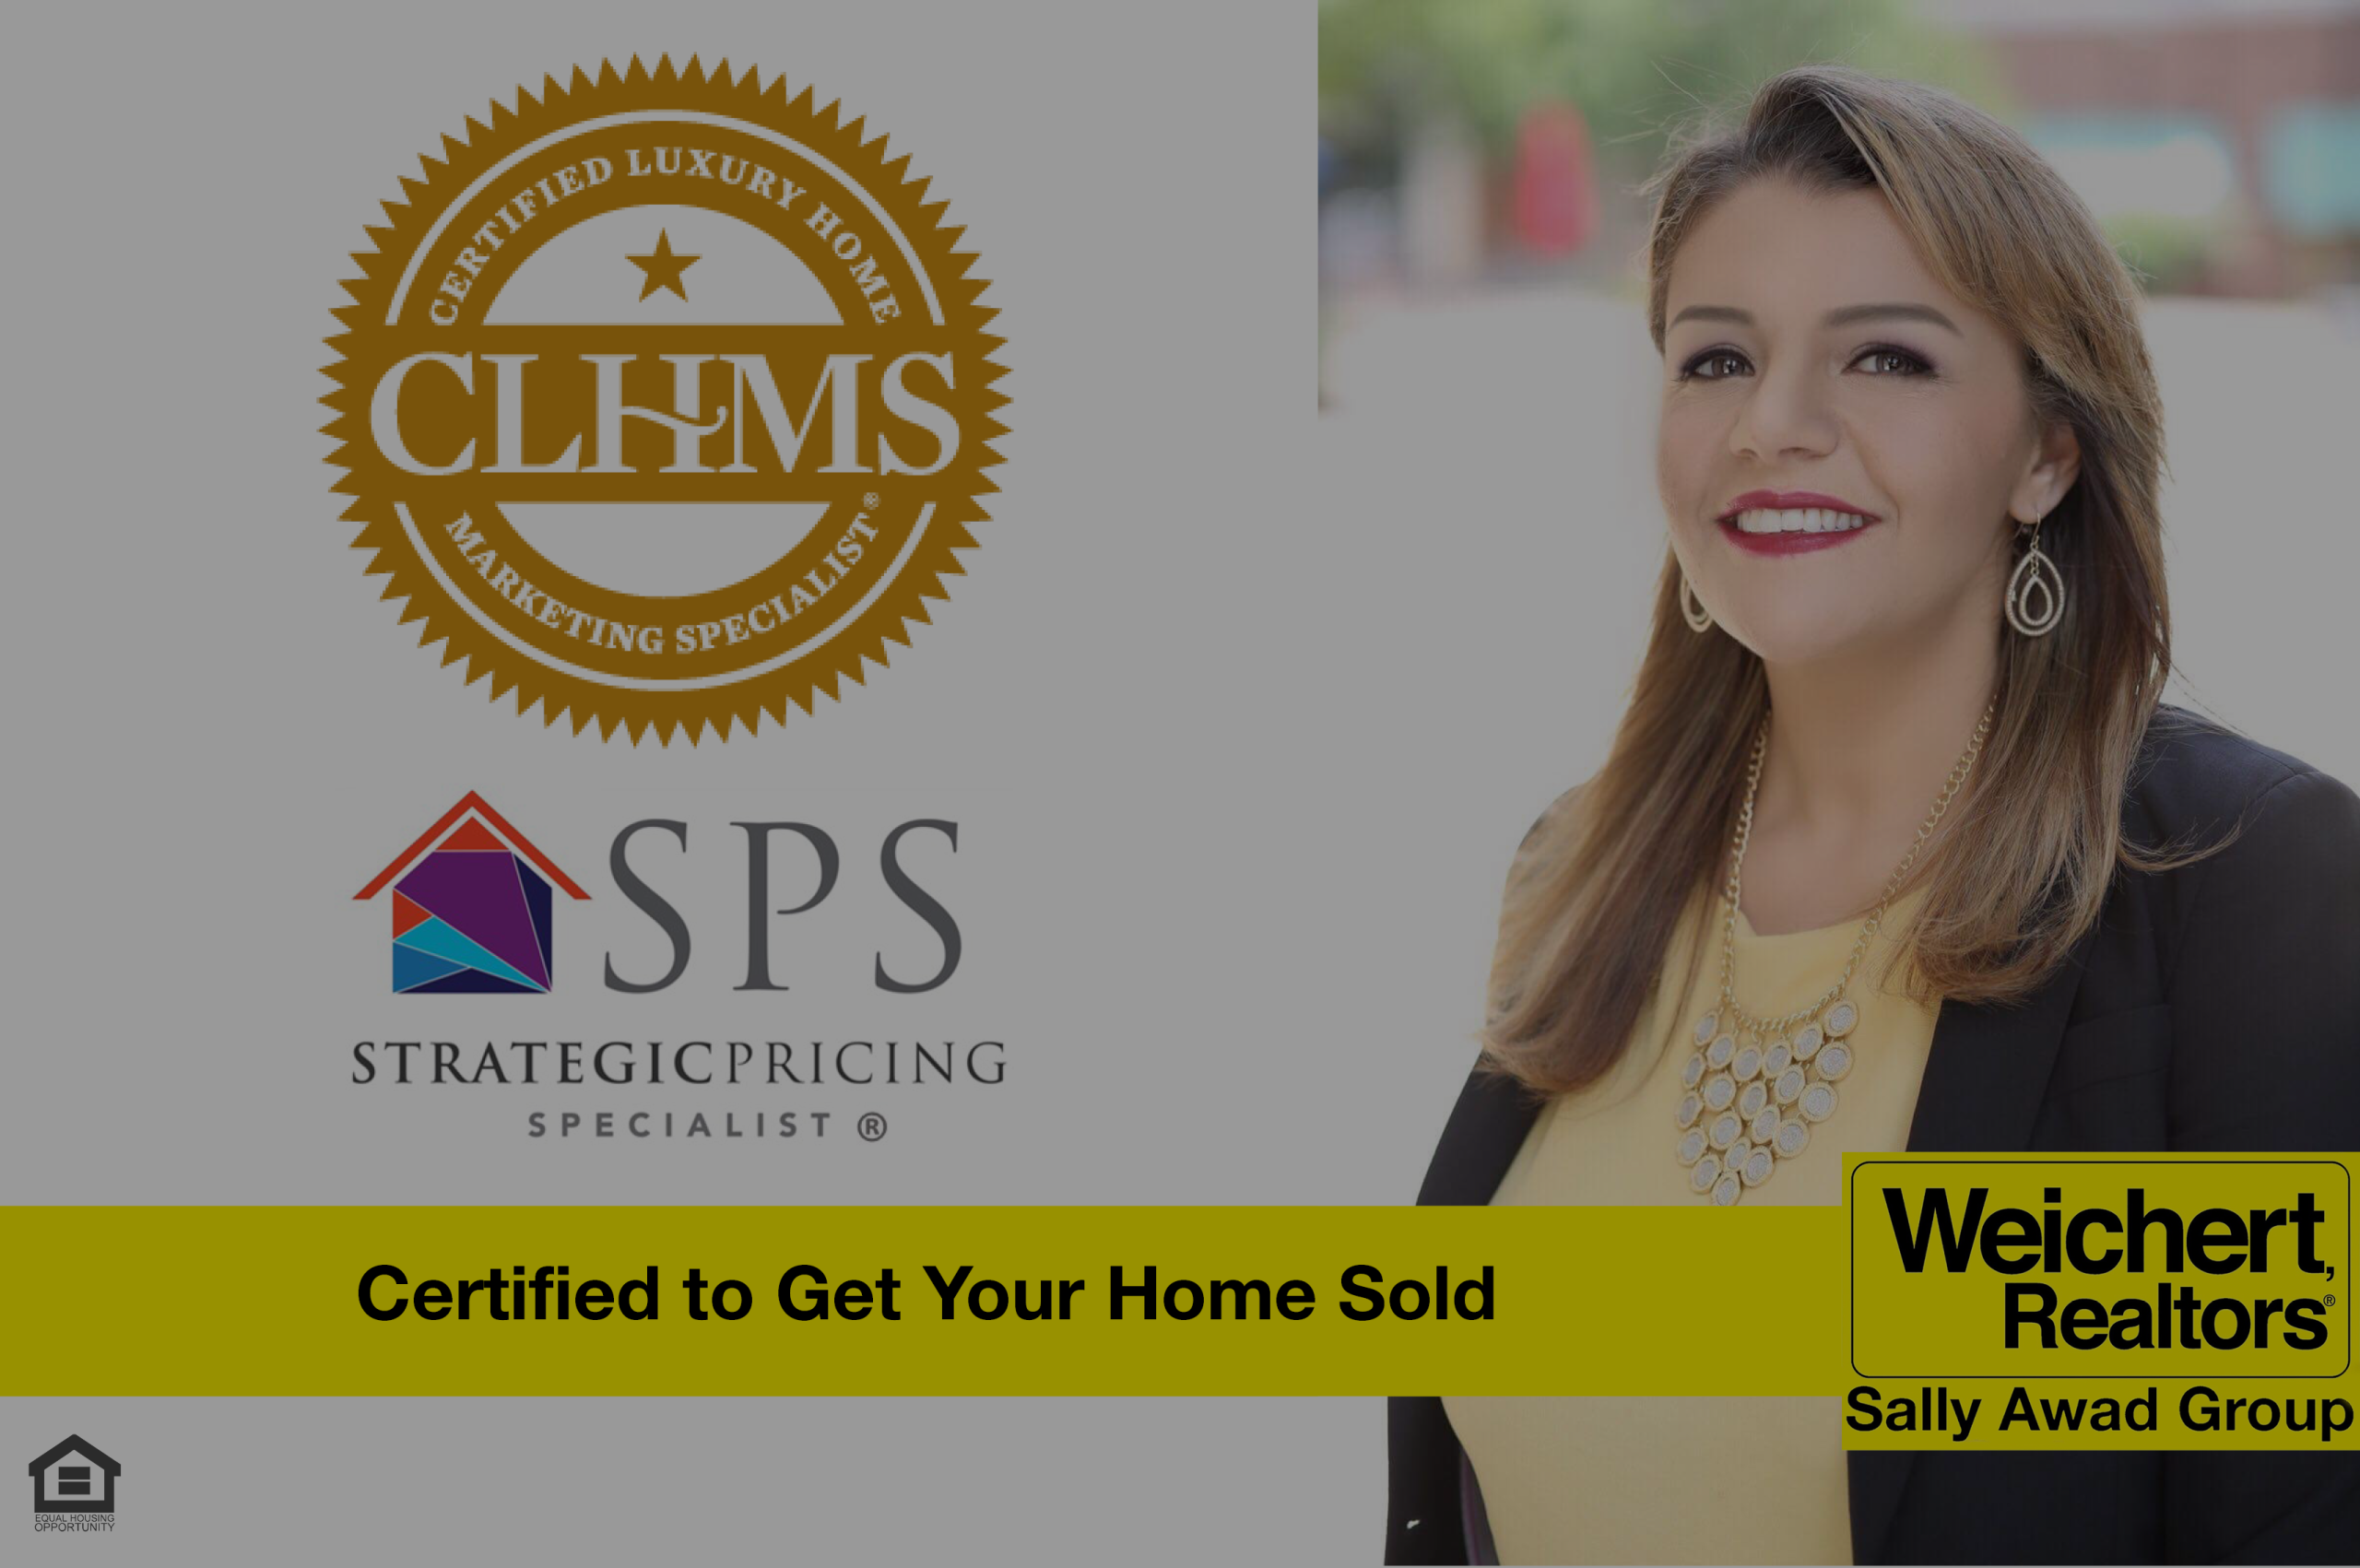 Certified to Get Your Home Sold